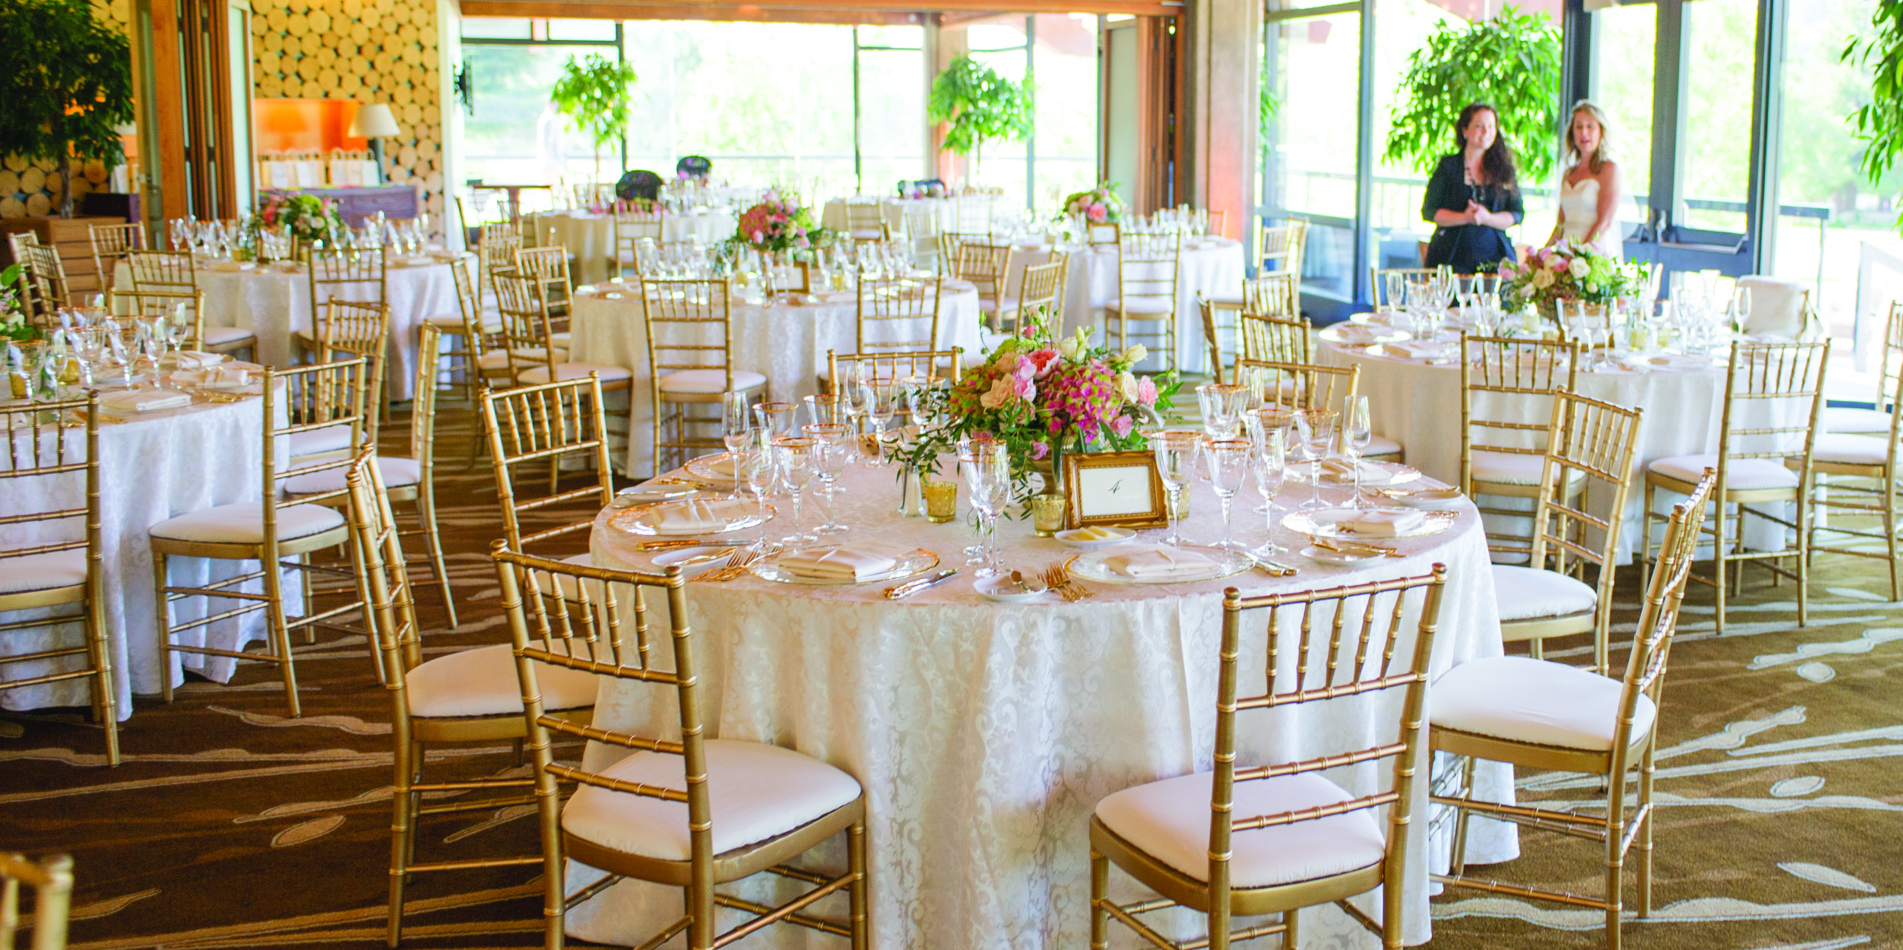 Carmel Valley Ranch_Weddings_clubhouse setup in rounds